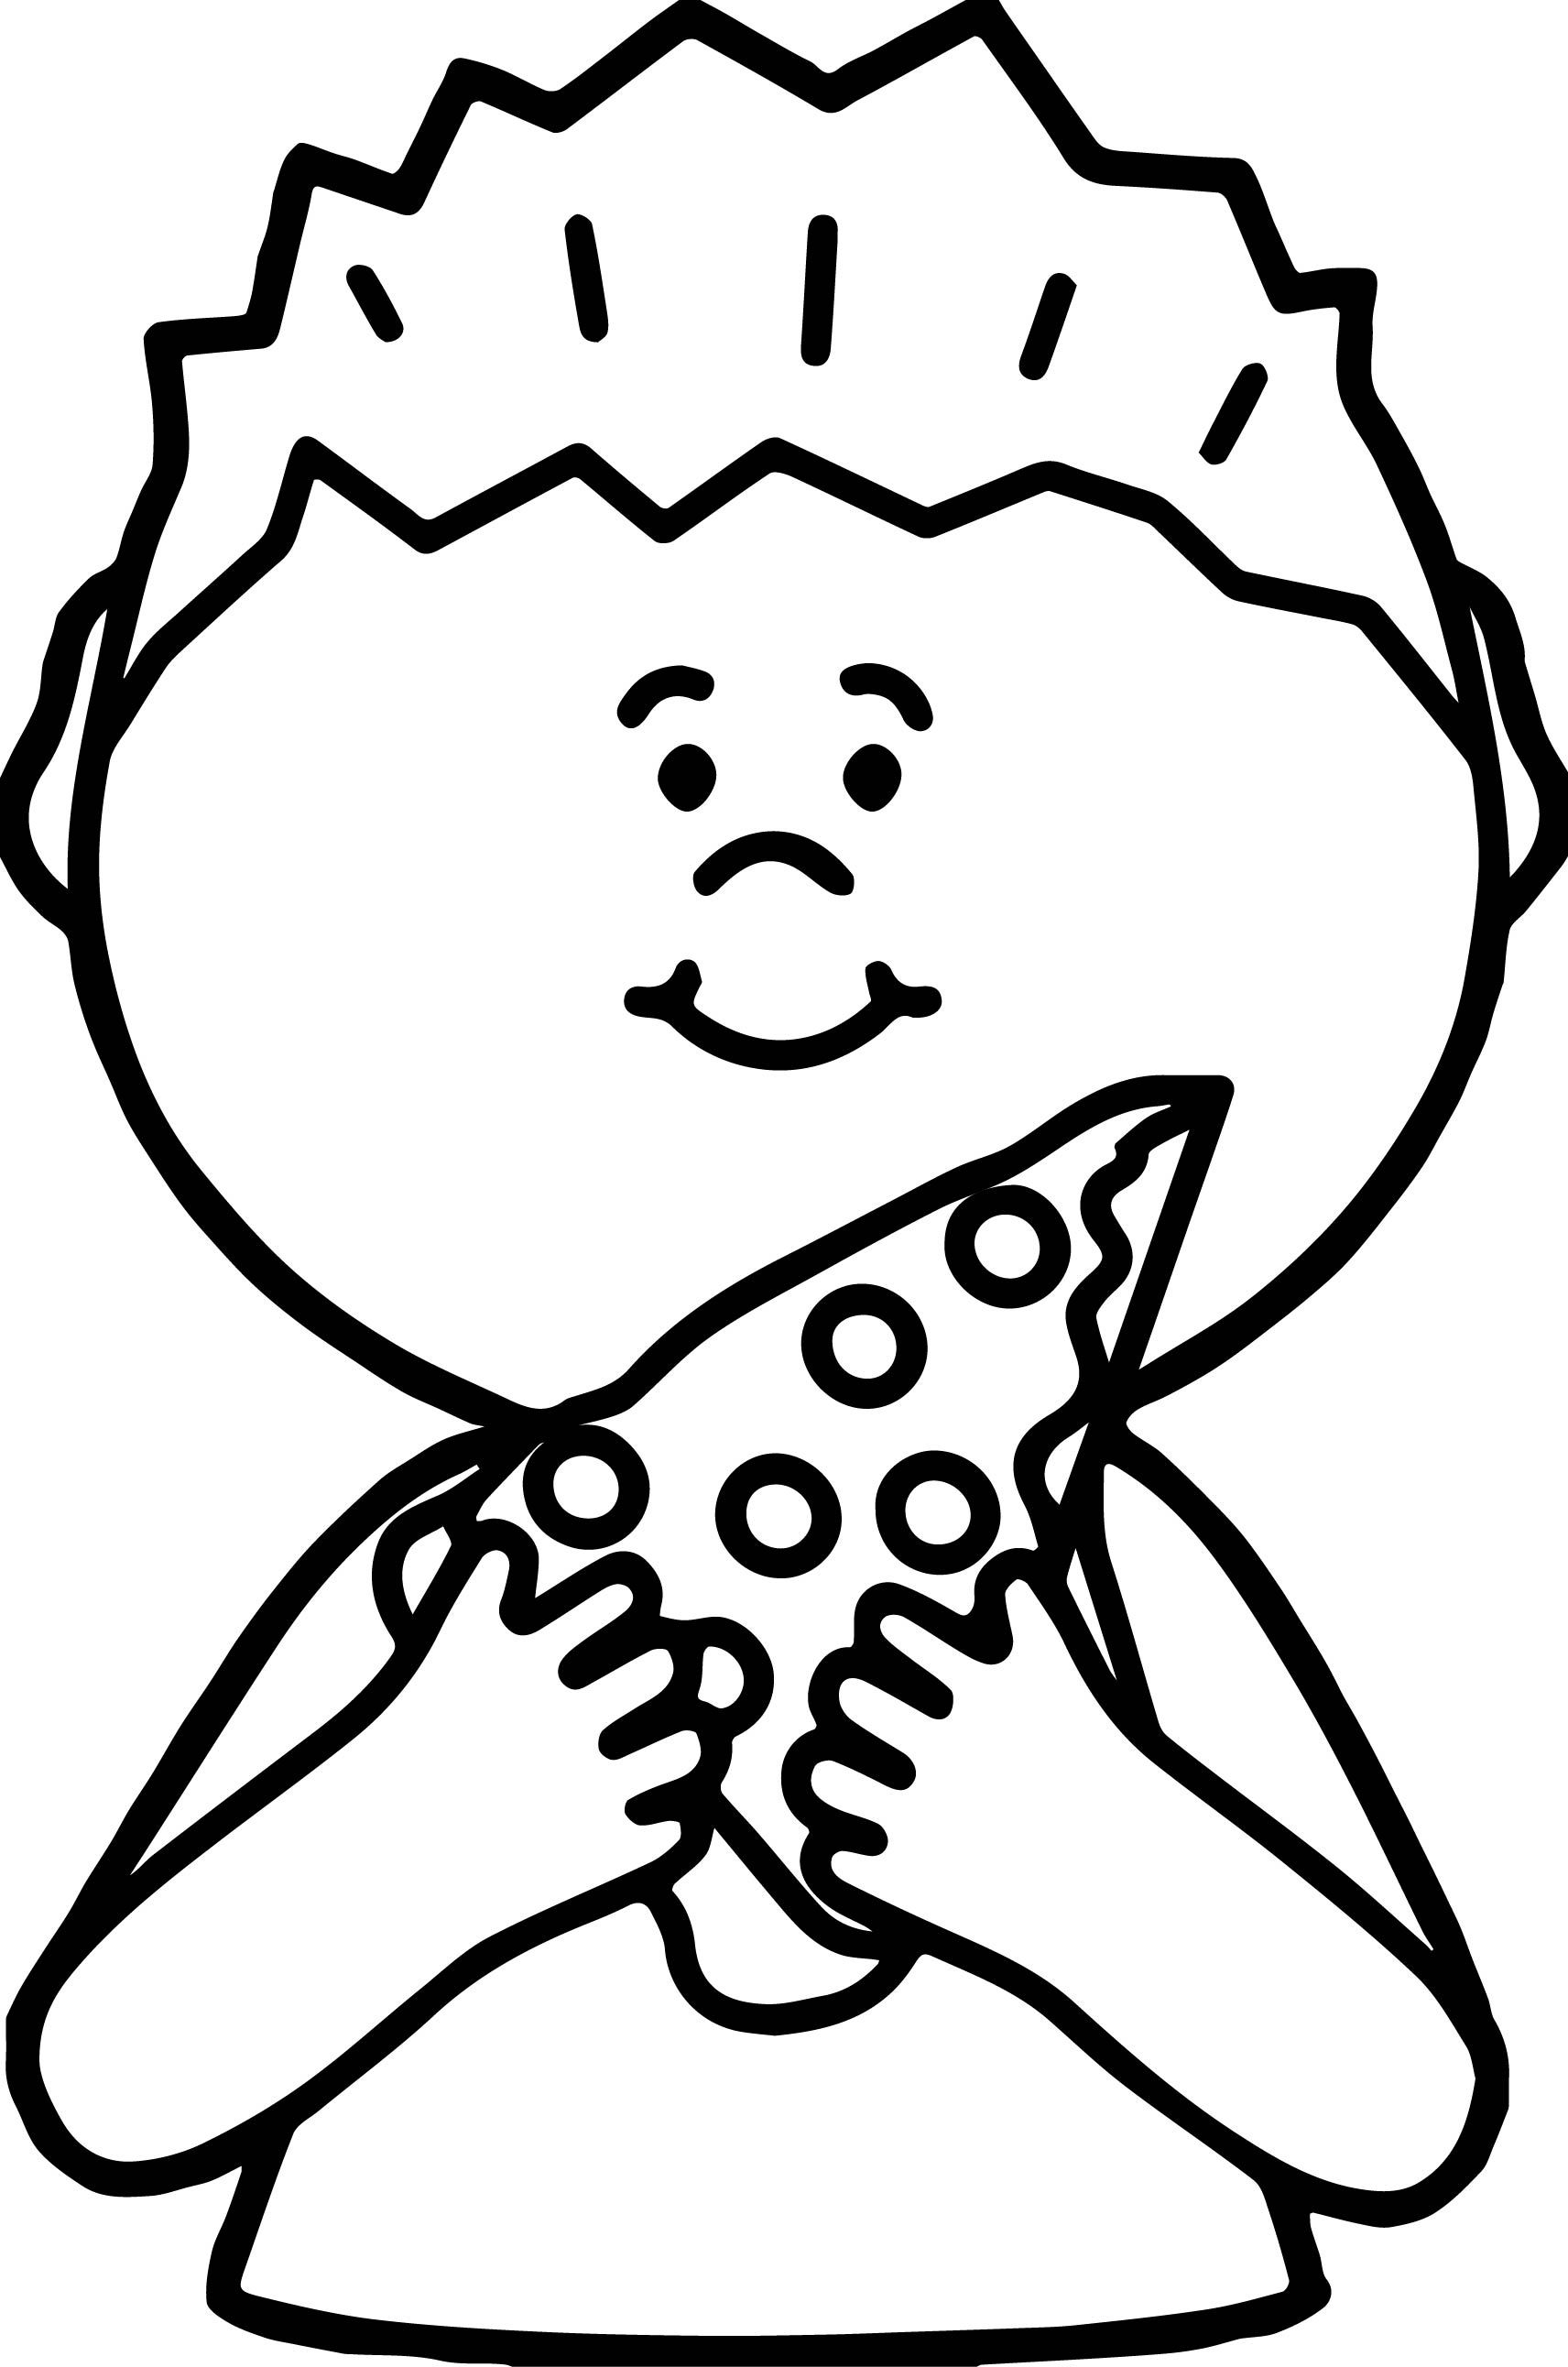 Awesome Boy Eating Pizza Coloring Page Coloring Pages Coloring